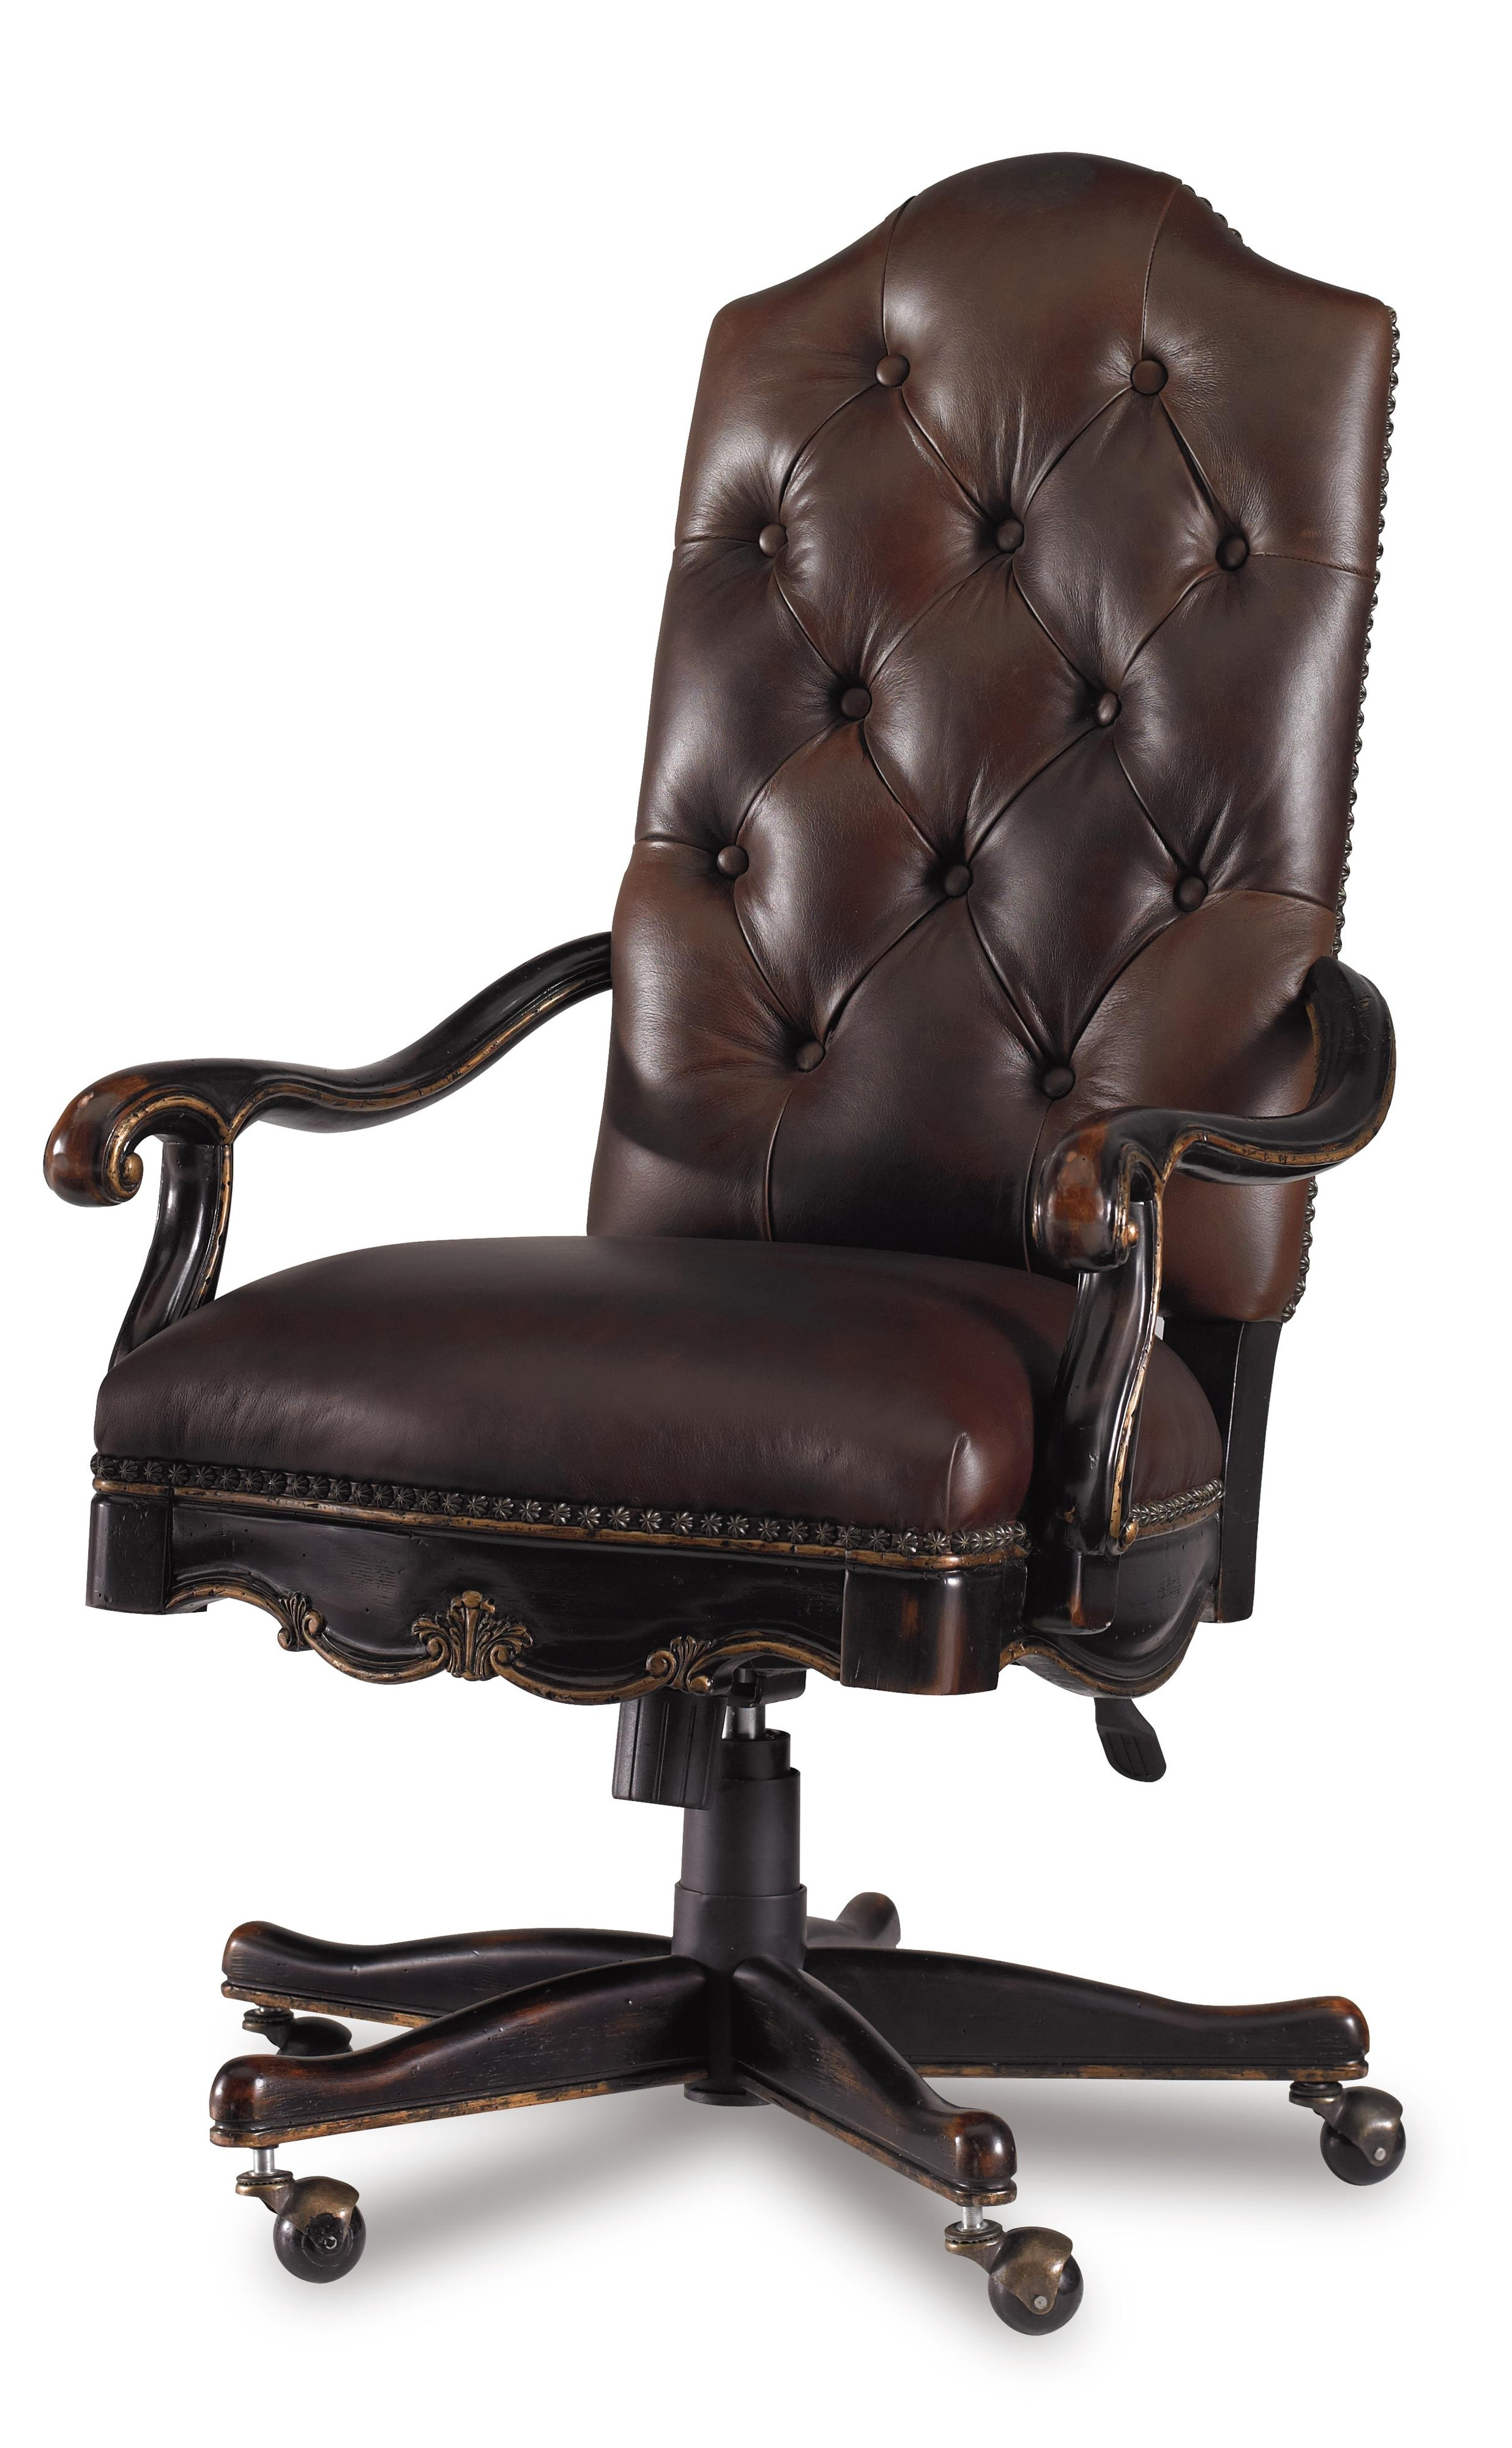 Chair : Martinez Executive Tilt Leather Office Chair Big And Tall Intended For Most Recent Green Executive Office Chairs (View 4 of 20)